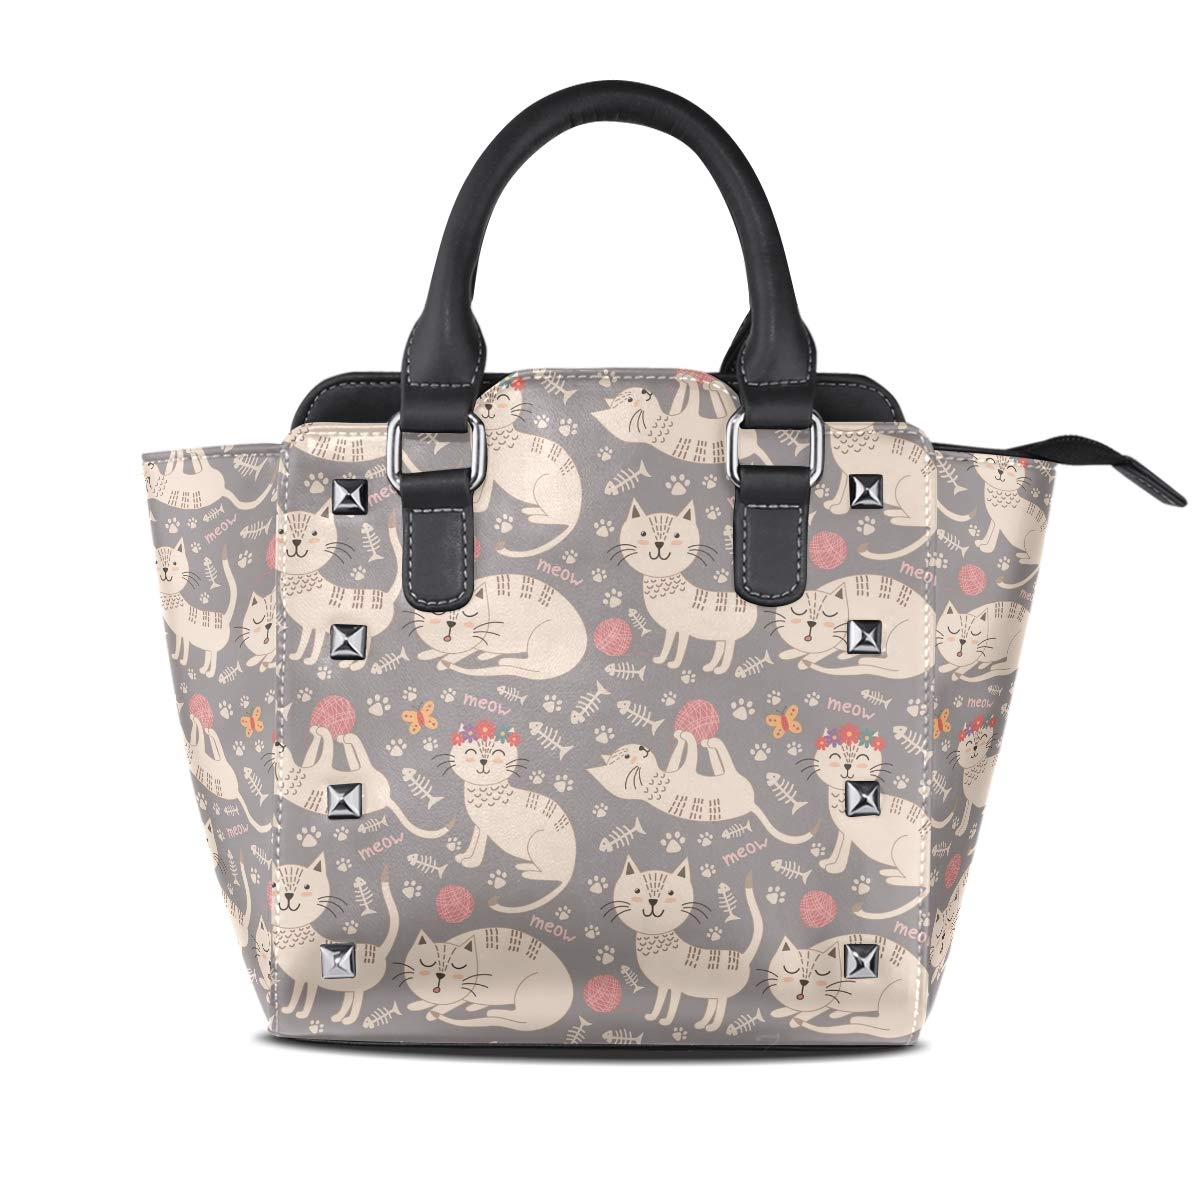 Design1 Handbag Cat Is Playing With Ball Of Yarn Genuine Leather Tote Rivet Bag Shoulder Strap Top Handle Women